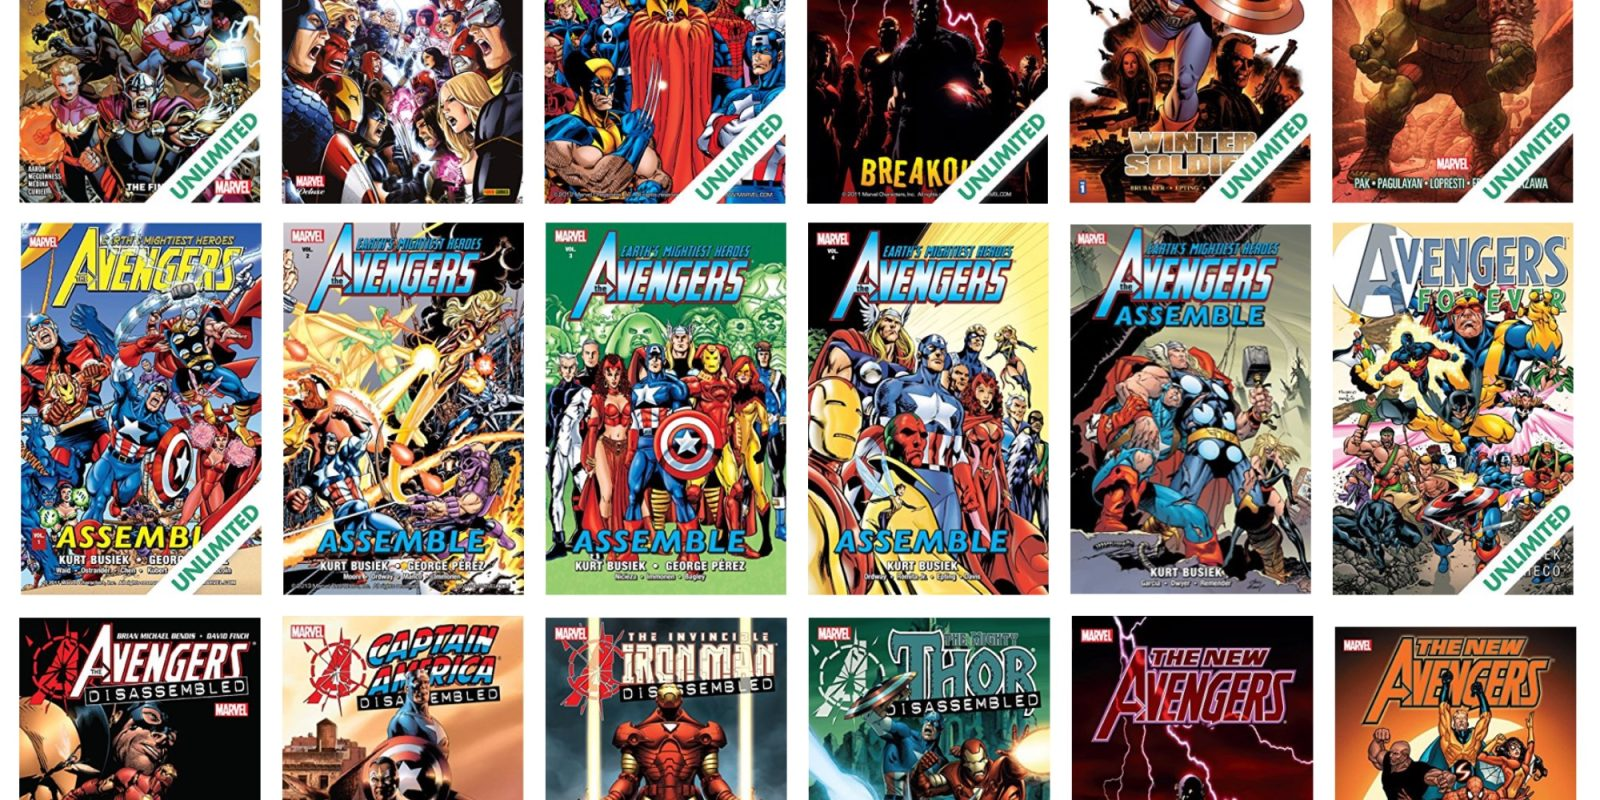 ComiXology's Avengers Blockbuster sale takes up to 67% off Marvel digital comics from $3